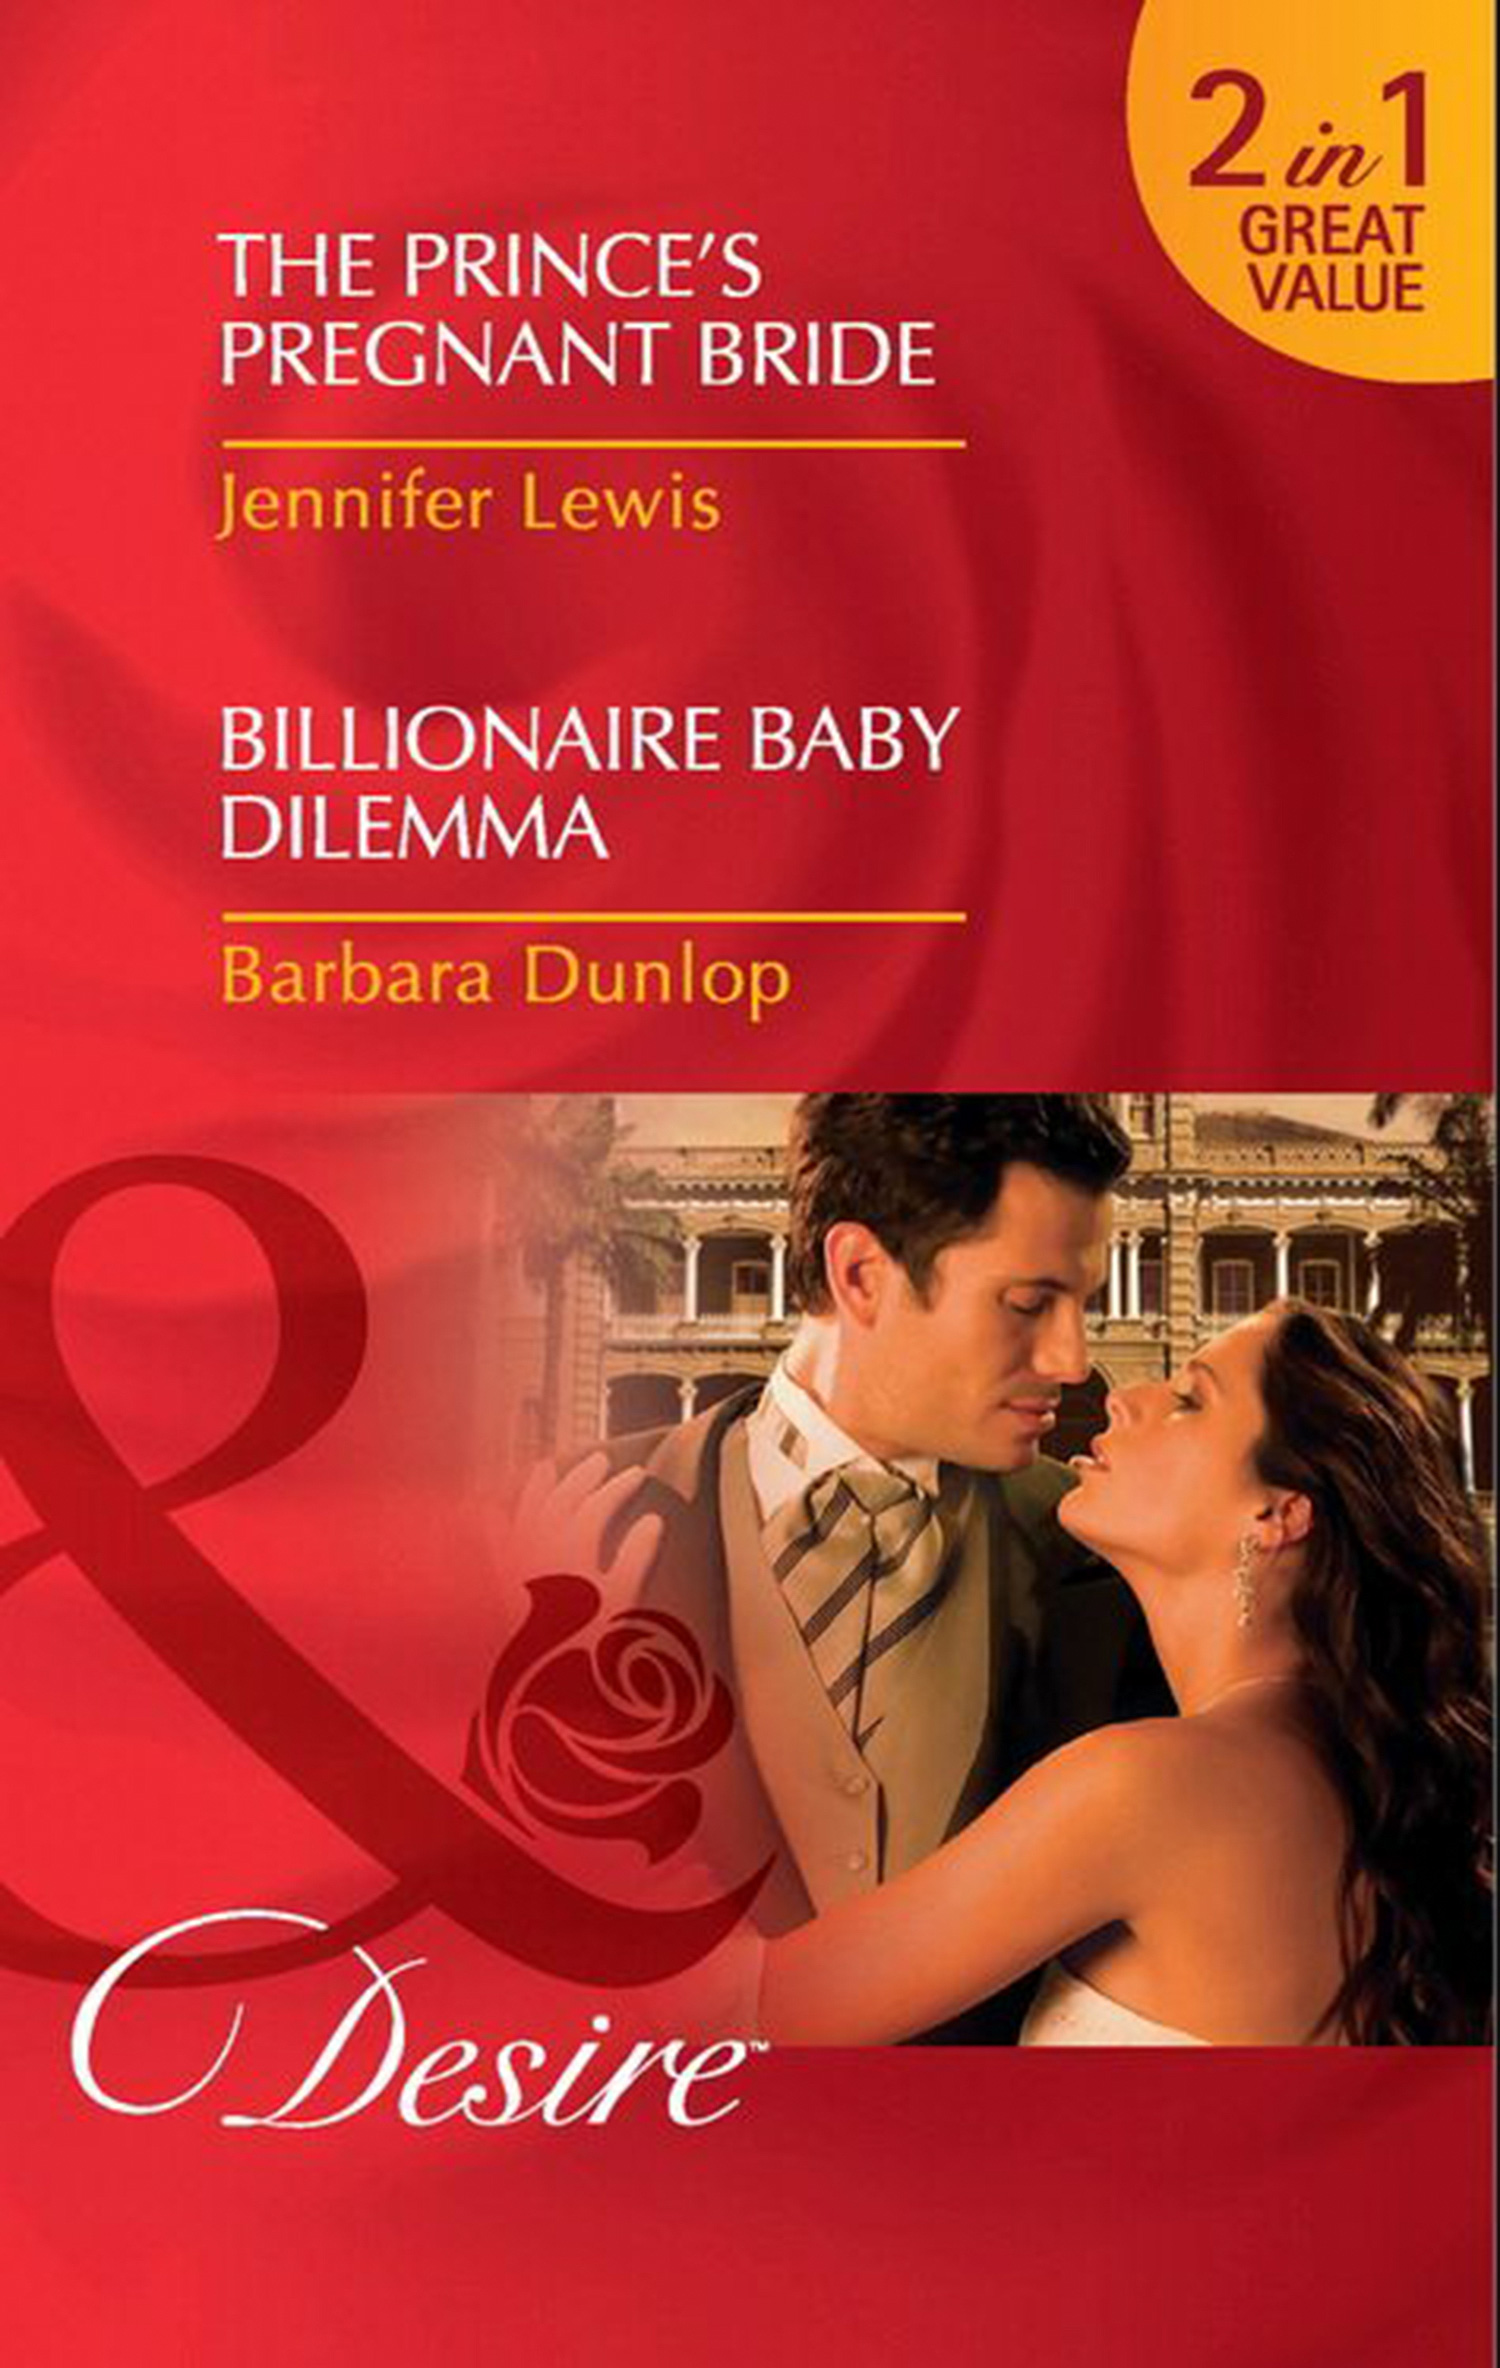 The Prince's Pregnant Bride / Billionaire Baby Dilemma